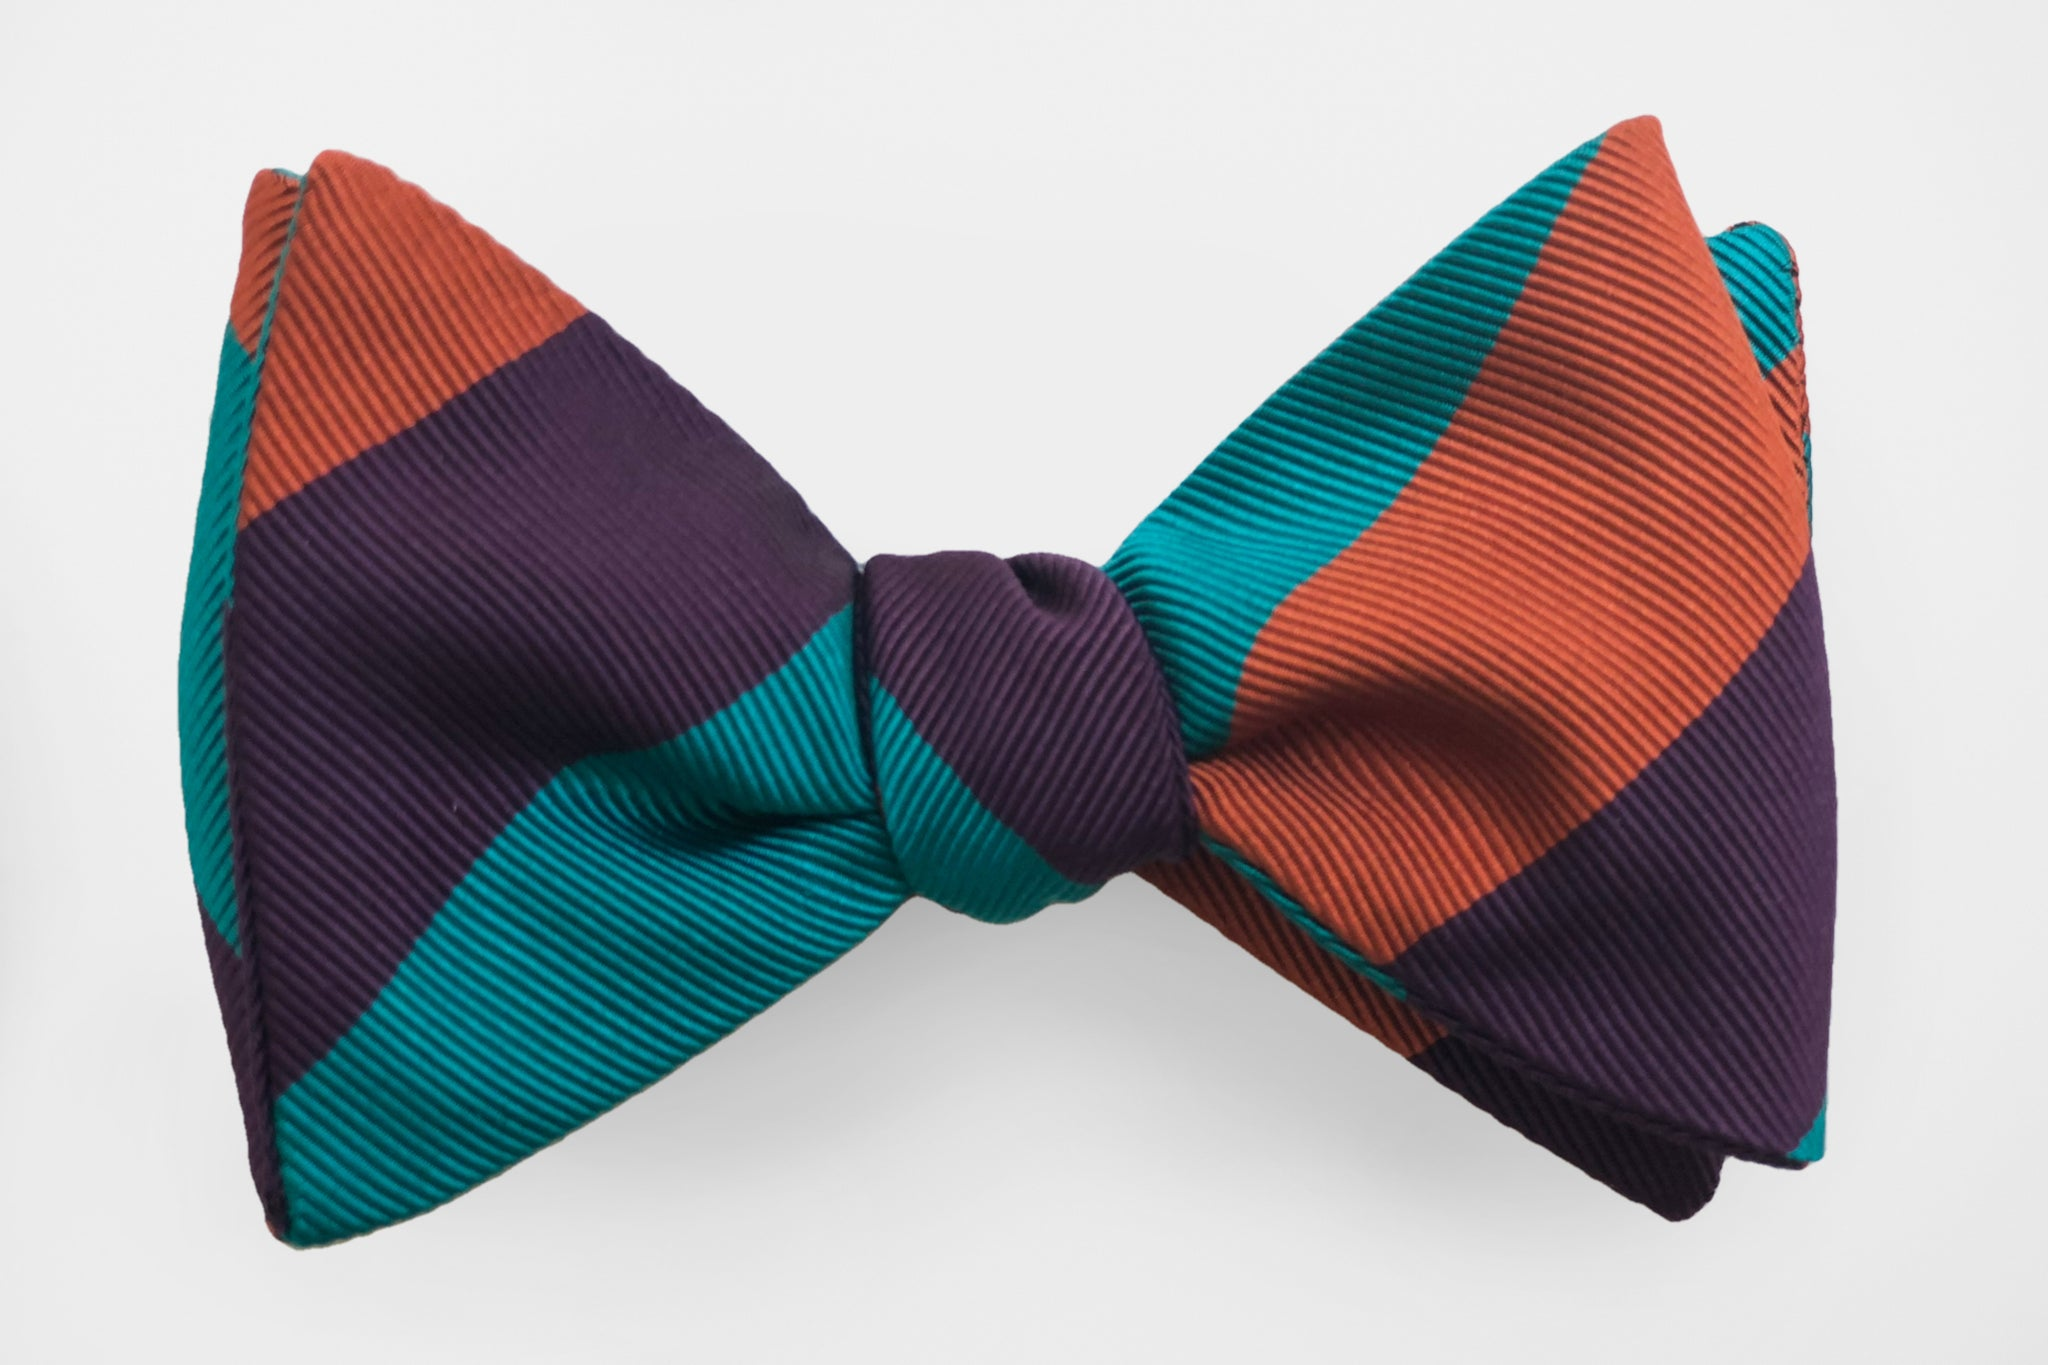 Wide Stripe Mardi Gras Bow Tie